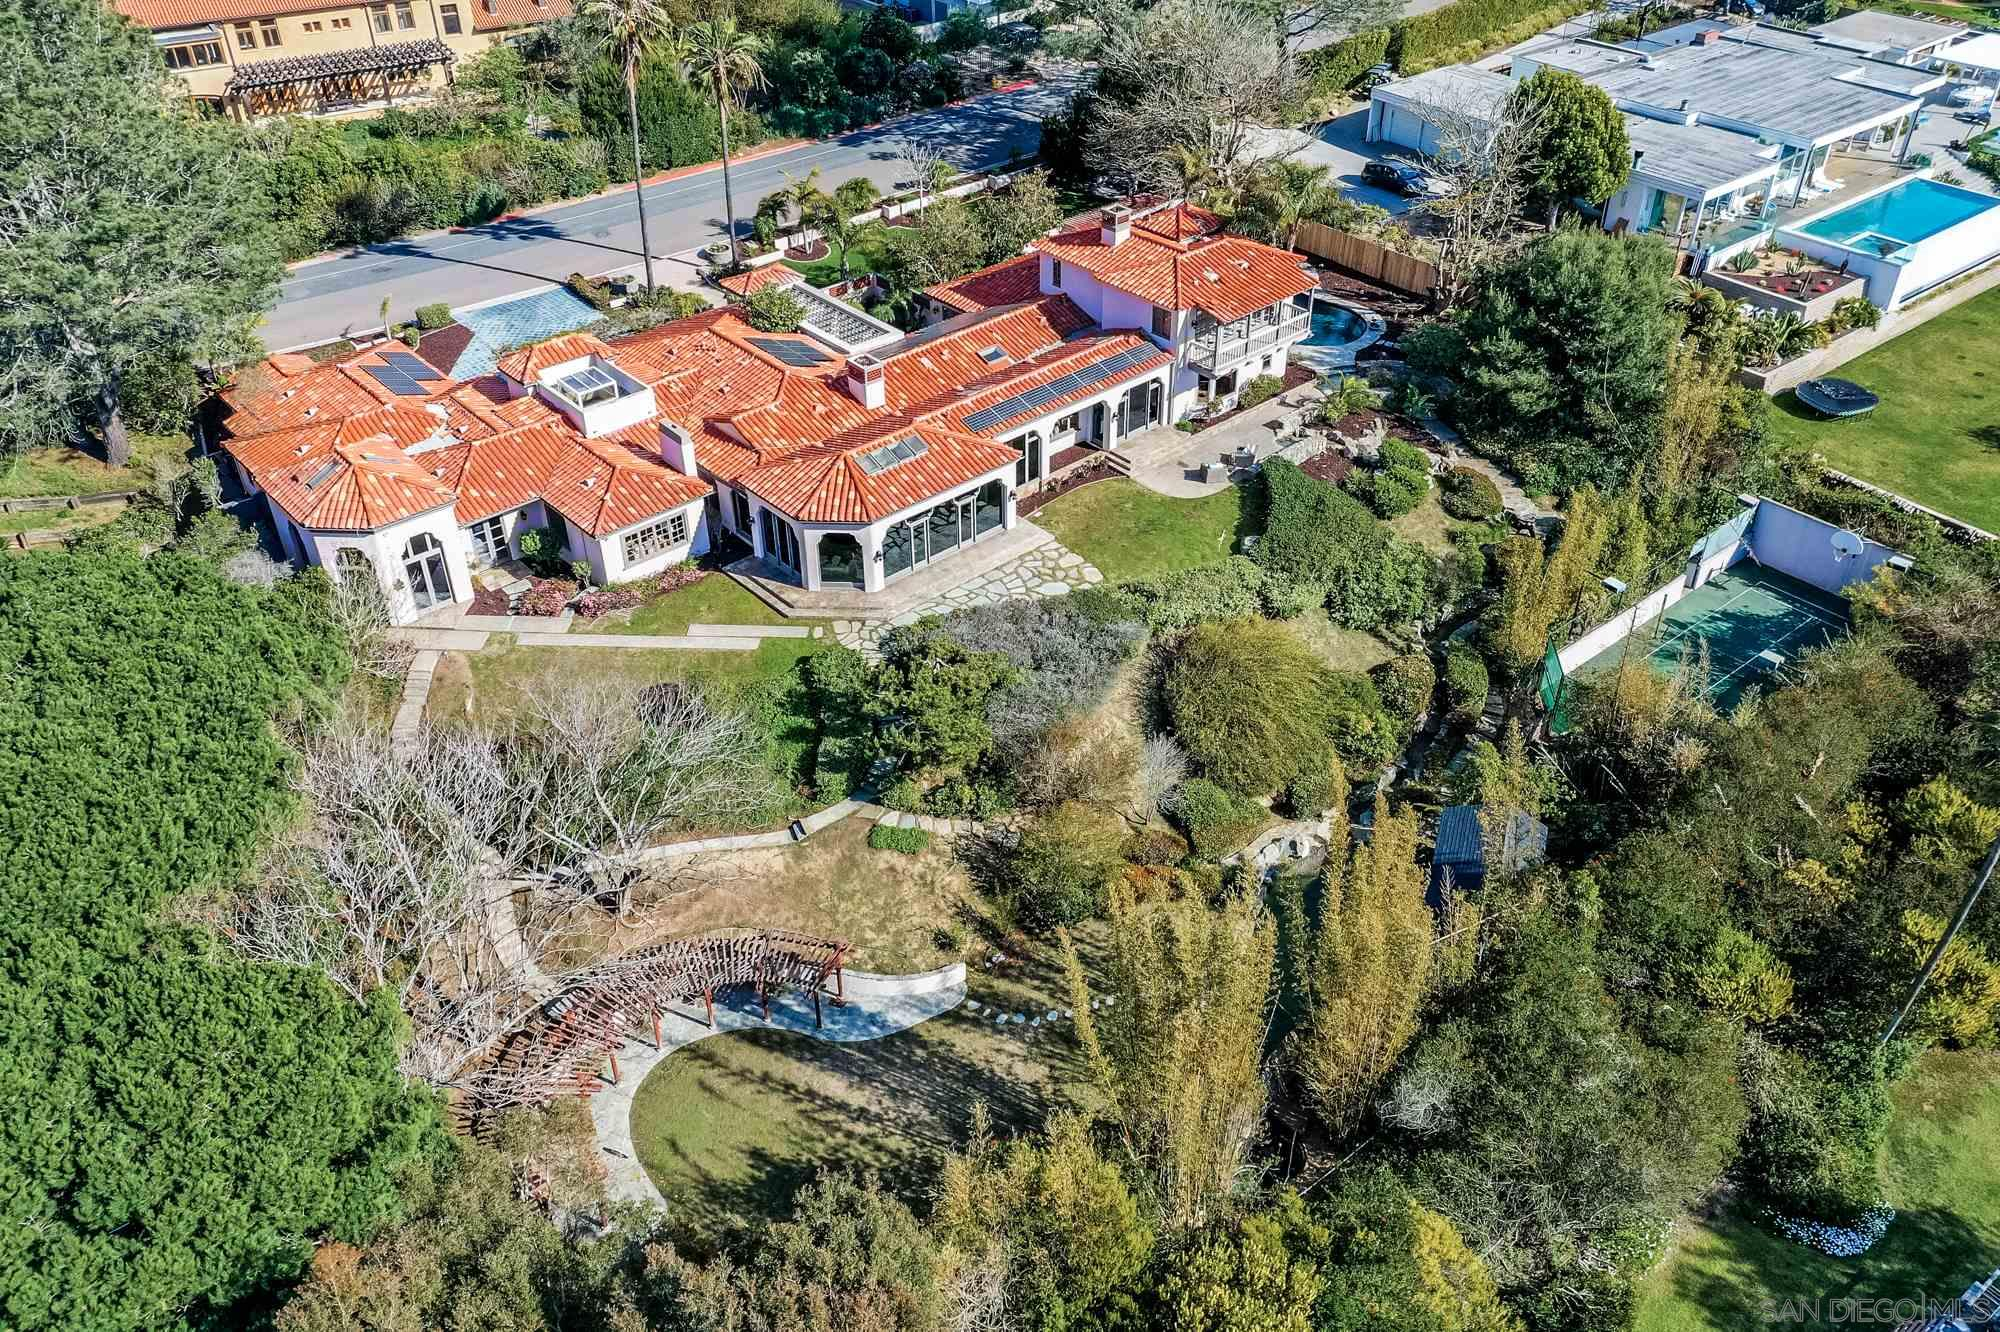 Entertaining $6,999,000- $7,499,000. Conveniently located just minutes from the beach, in the highly-sought after La Jolla Farms community, 9660 Black Gold Road is truly a stunning property.  Boasting gorgeous ocean views, this expansive estate offers the rare opportunity to live on a beautifully-landscaped acre lot, all while being within close proximity to the beach, shopping and fine dining! Featuring 6 bedrooms, 4.5 baths and over 6,900 sq ft of magnificent living spaces, on-premises sport court and extensive water features, designed by famous architect Don Edison.Entertain in the bright and open living room, with its elegant coffered ceilings, floor to ceiling windows that bathe the room in natural light, and a fireplace, perfect for creating a cozy ambiance while taking in the million dollar views. Expansive windows throughout the home bring the calming outdoor elements inside, offering spectacular views while creating a zen-like atmosphere. Prepare your favorite meal in the gourmet kitchen with its state of the art appliances, including a wine refrigerator or host a dinner party in the nearby dining room, where you can enjoy great food and company, while relishing the spectacular views. And with doors leading outside, you can easily take advantage of indoor/outdoor living!  Tantalizing ocean views take center stage in the master retreat, with a wall of French doors leading out to a patio, perfect for allowing the fresh coastal breezes to trickle in.  Unwind in the luxurious master bath, complete with a large soaking tub, walk-in shower and spacious walk in closet. With 5 additional bedrooms, as well as a wood-paneled office complete with custom built-ins and an oversized bonus room, perfect for a home gym or yoga studio, this home offers every amenity you need! Enjoy a five-star getaway experience in your very own backyard, complete with relaxing waterfalls,  a beautiful oversized swimming pool and a koi pond with shaded seating, where you can partake in your